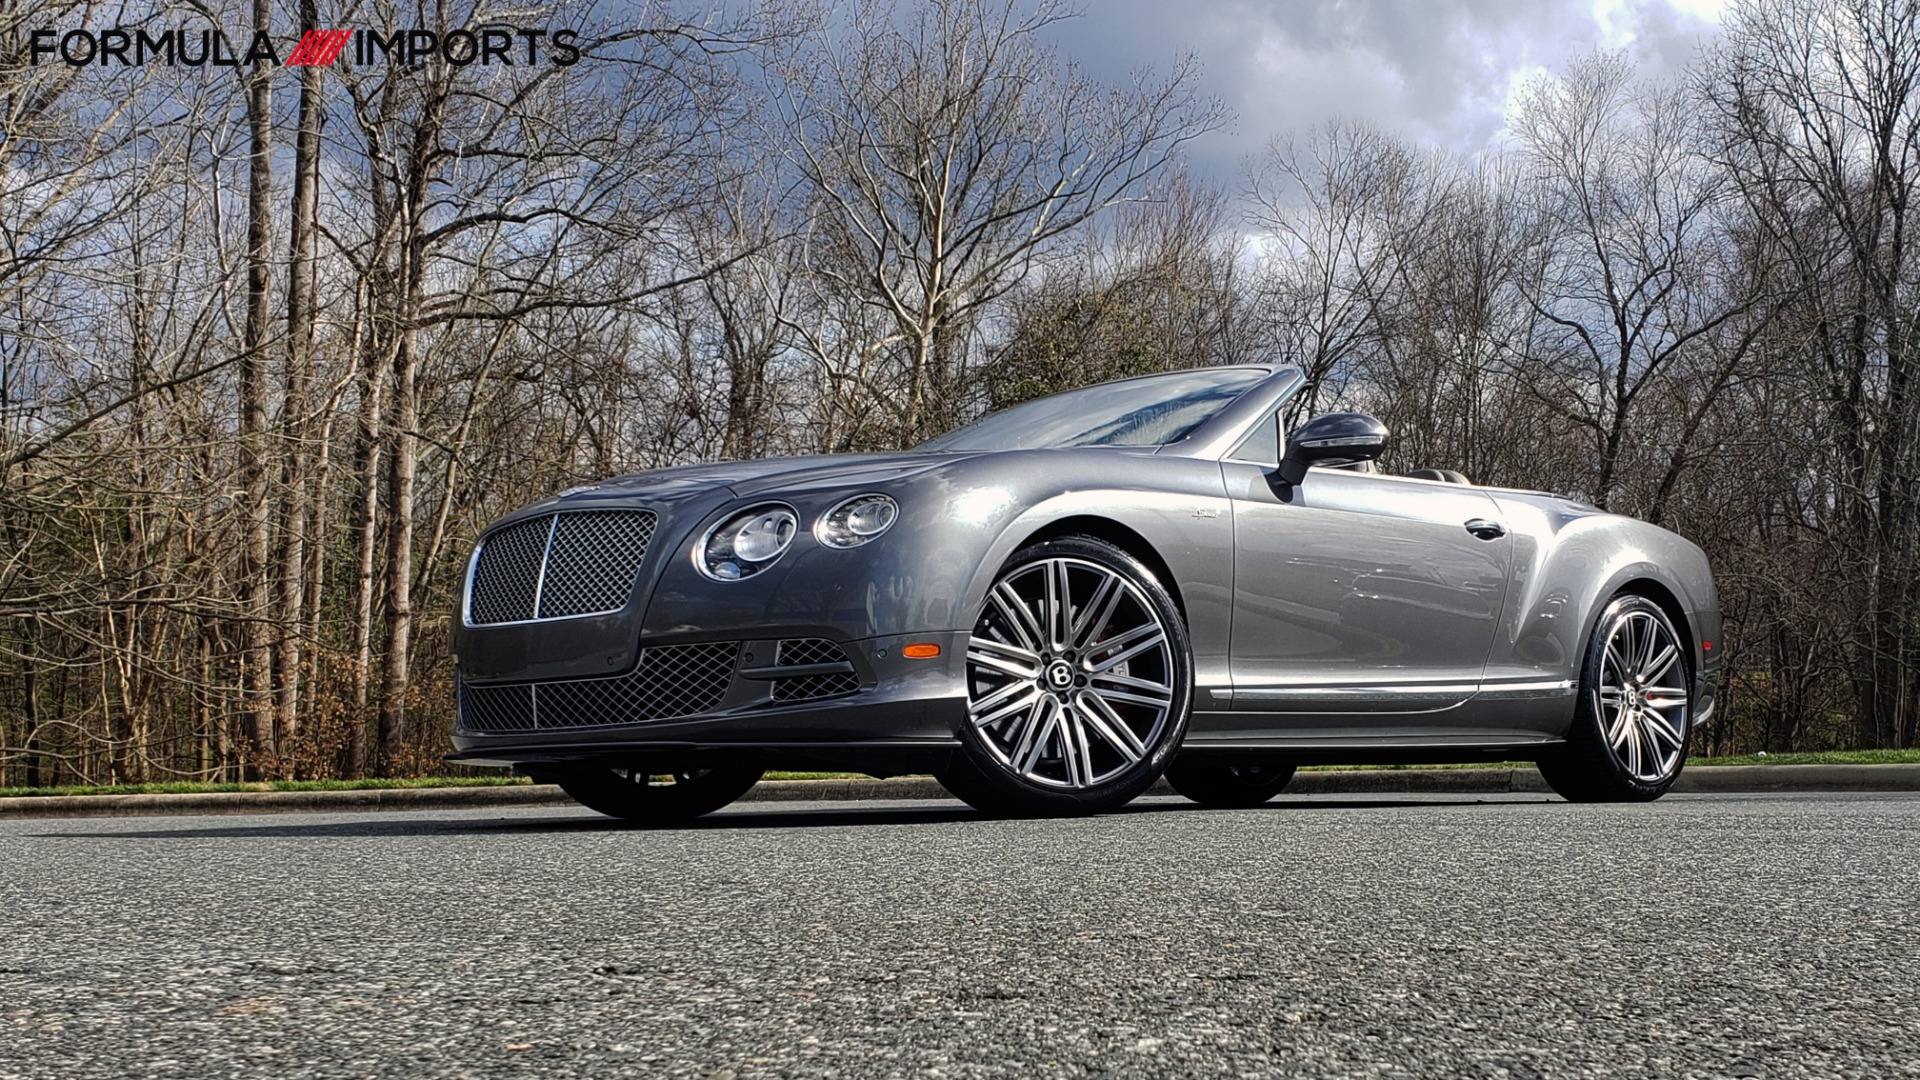 Used 2015 Bentley CONTINENTAL SPEED CONV / 6.0L W12 / NAV / VENT SEATS / REARVIEW for sale Sold at Formula Imports in Charlotte NC 28227 3